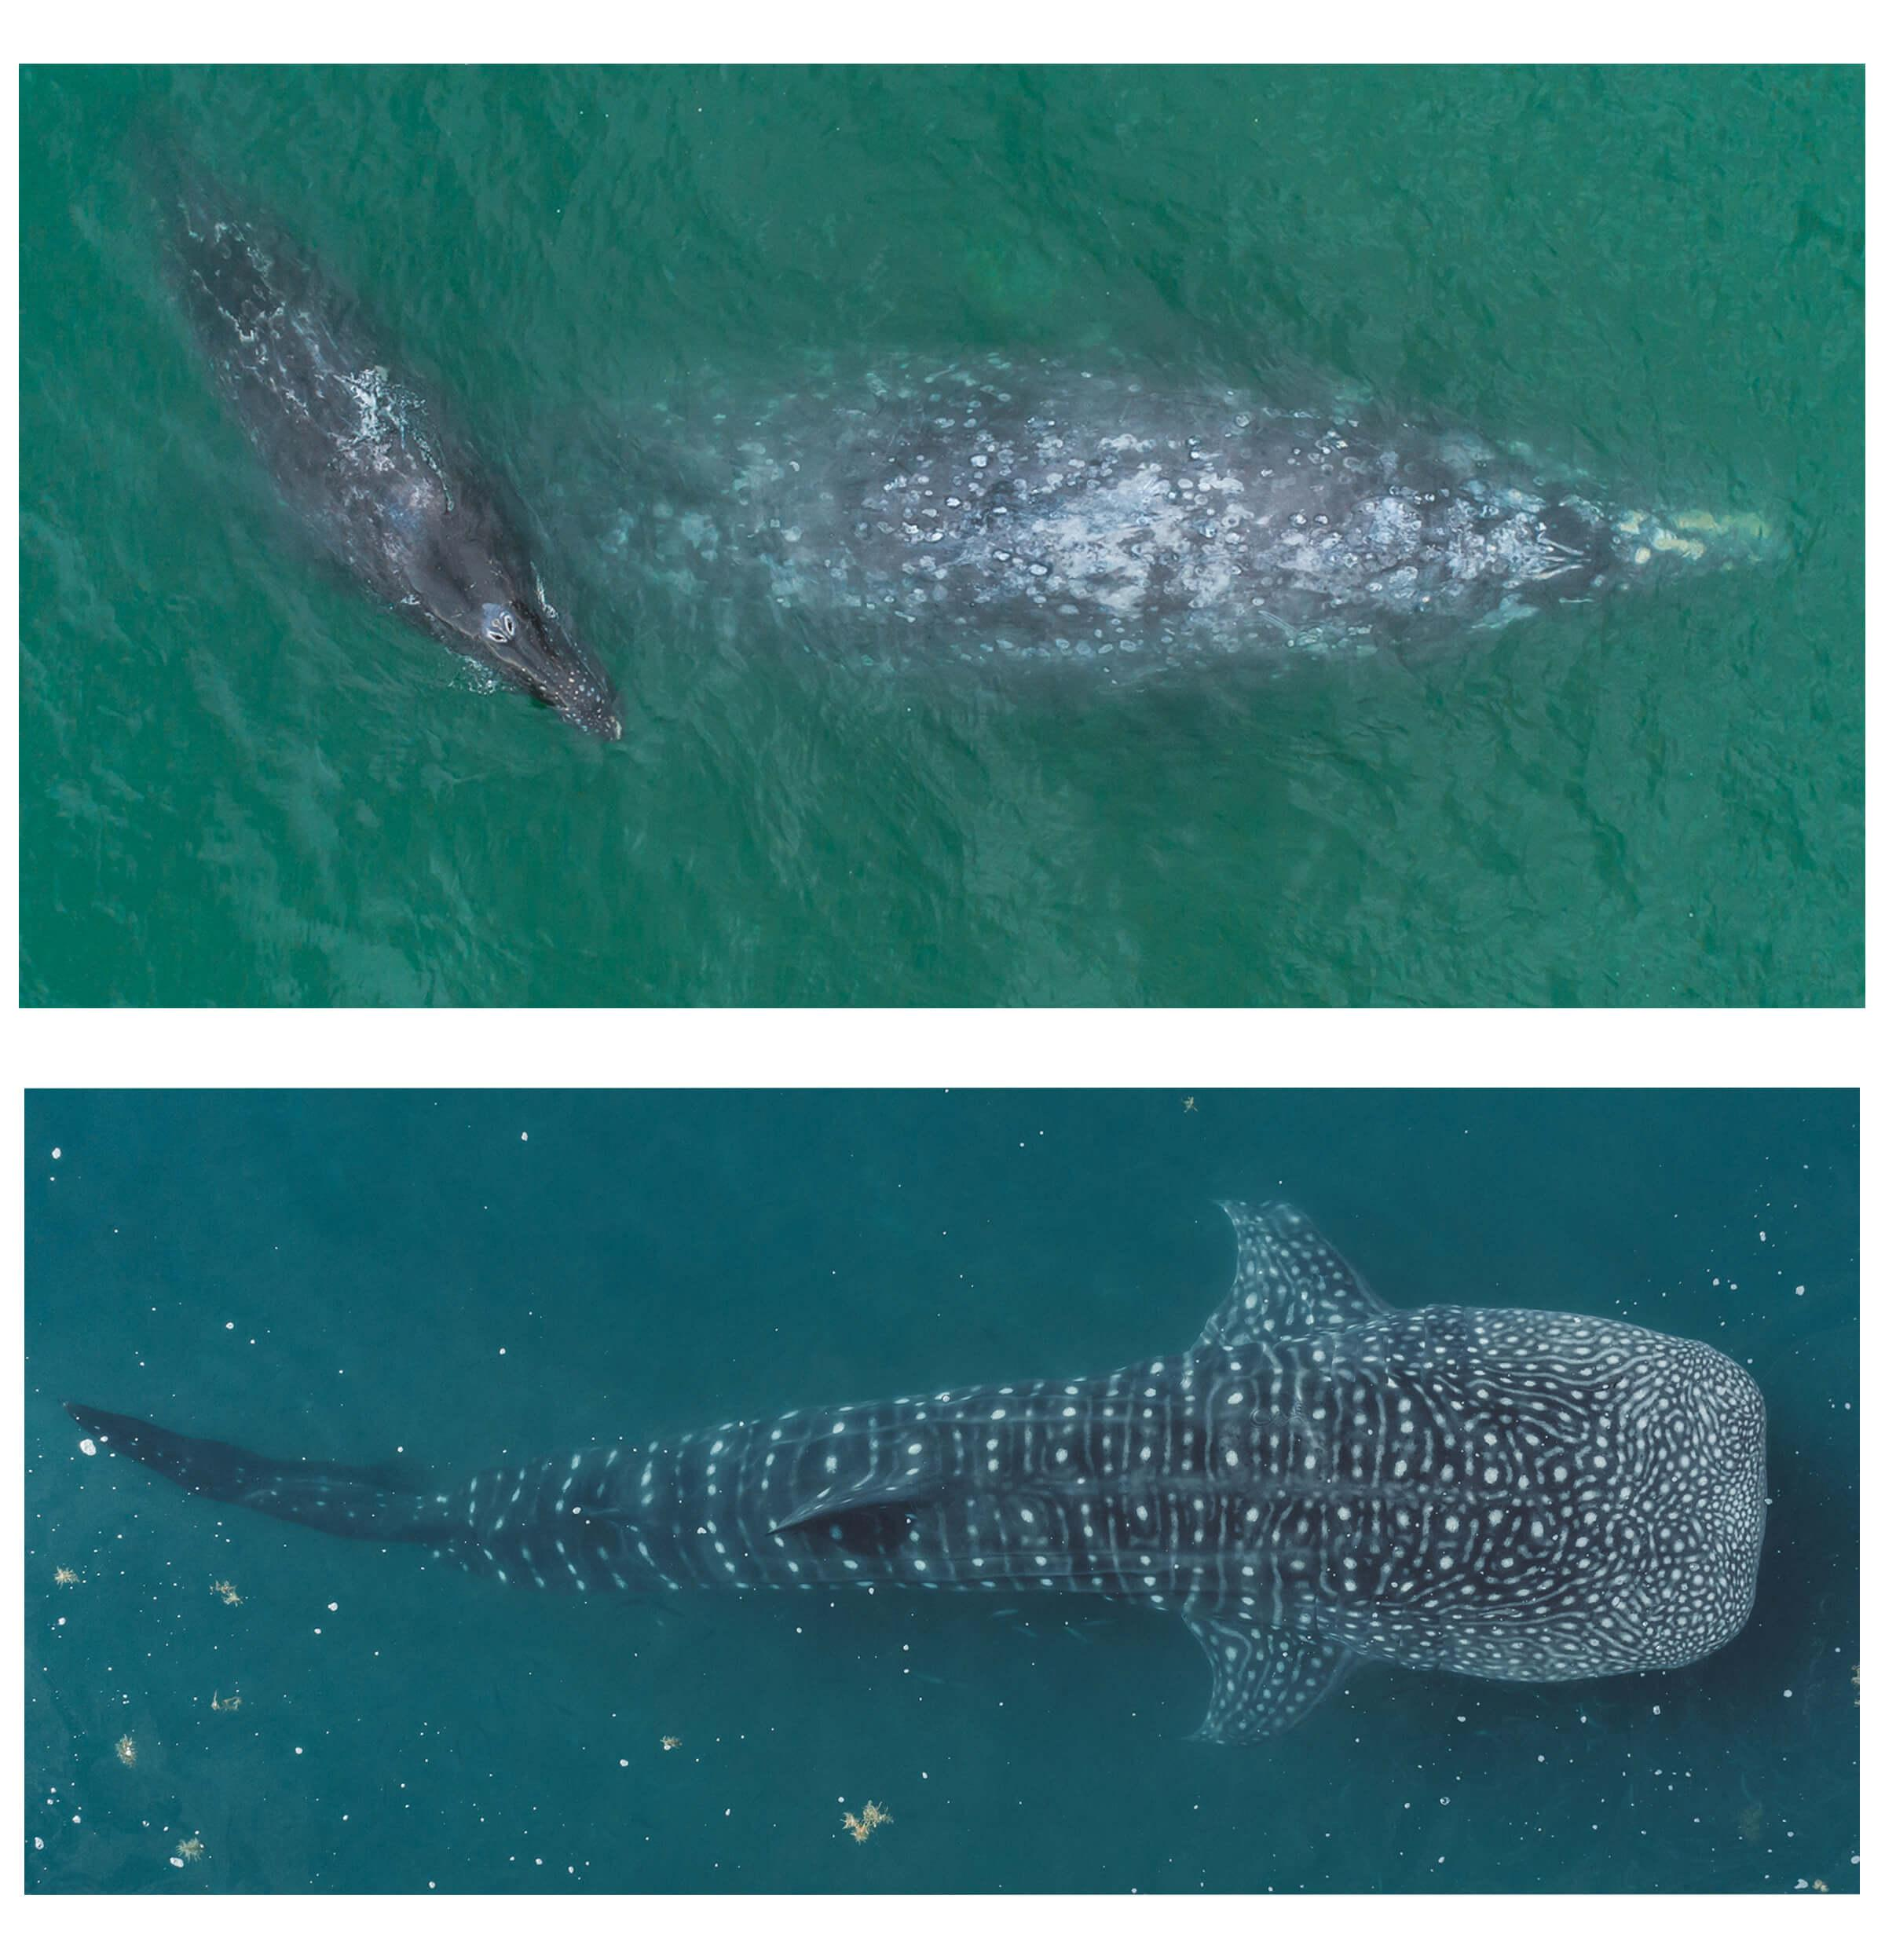 gray whales and whale shark in Baja